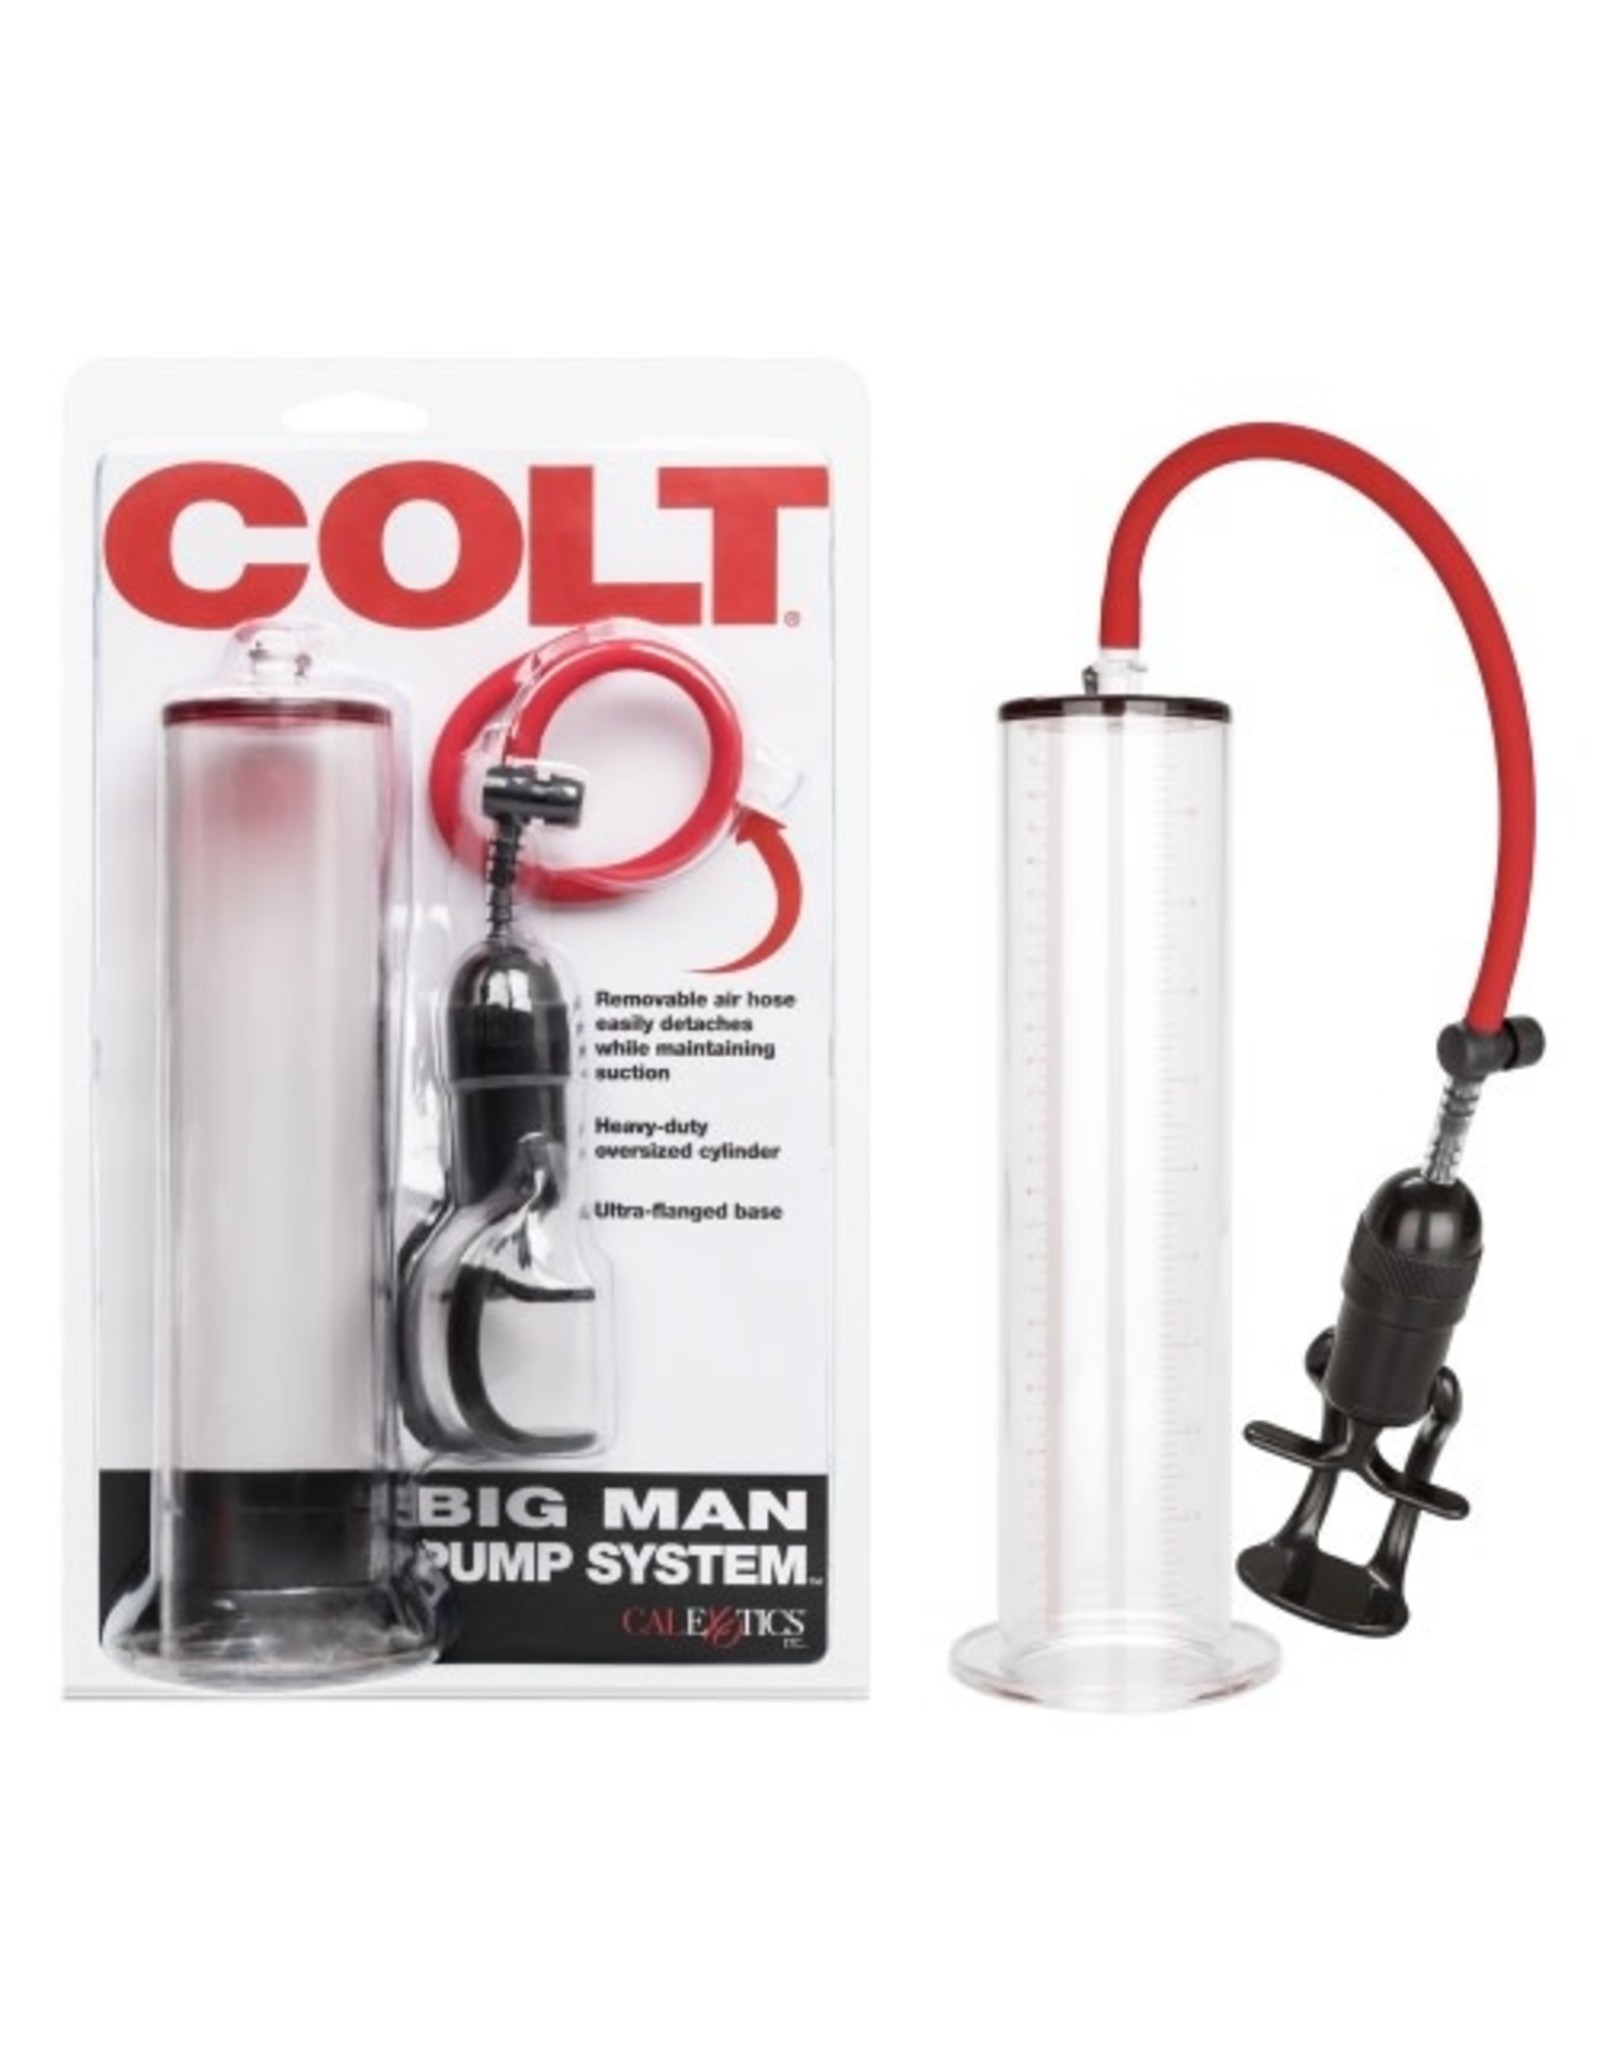 COLT - BIG MAN PUMP SYSTEM